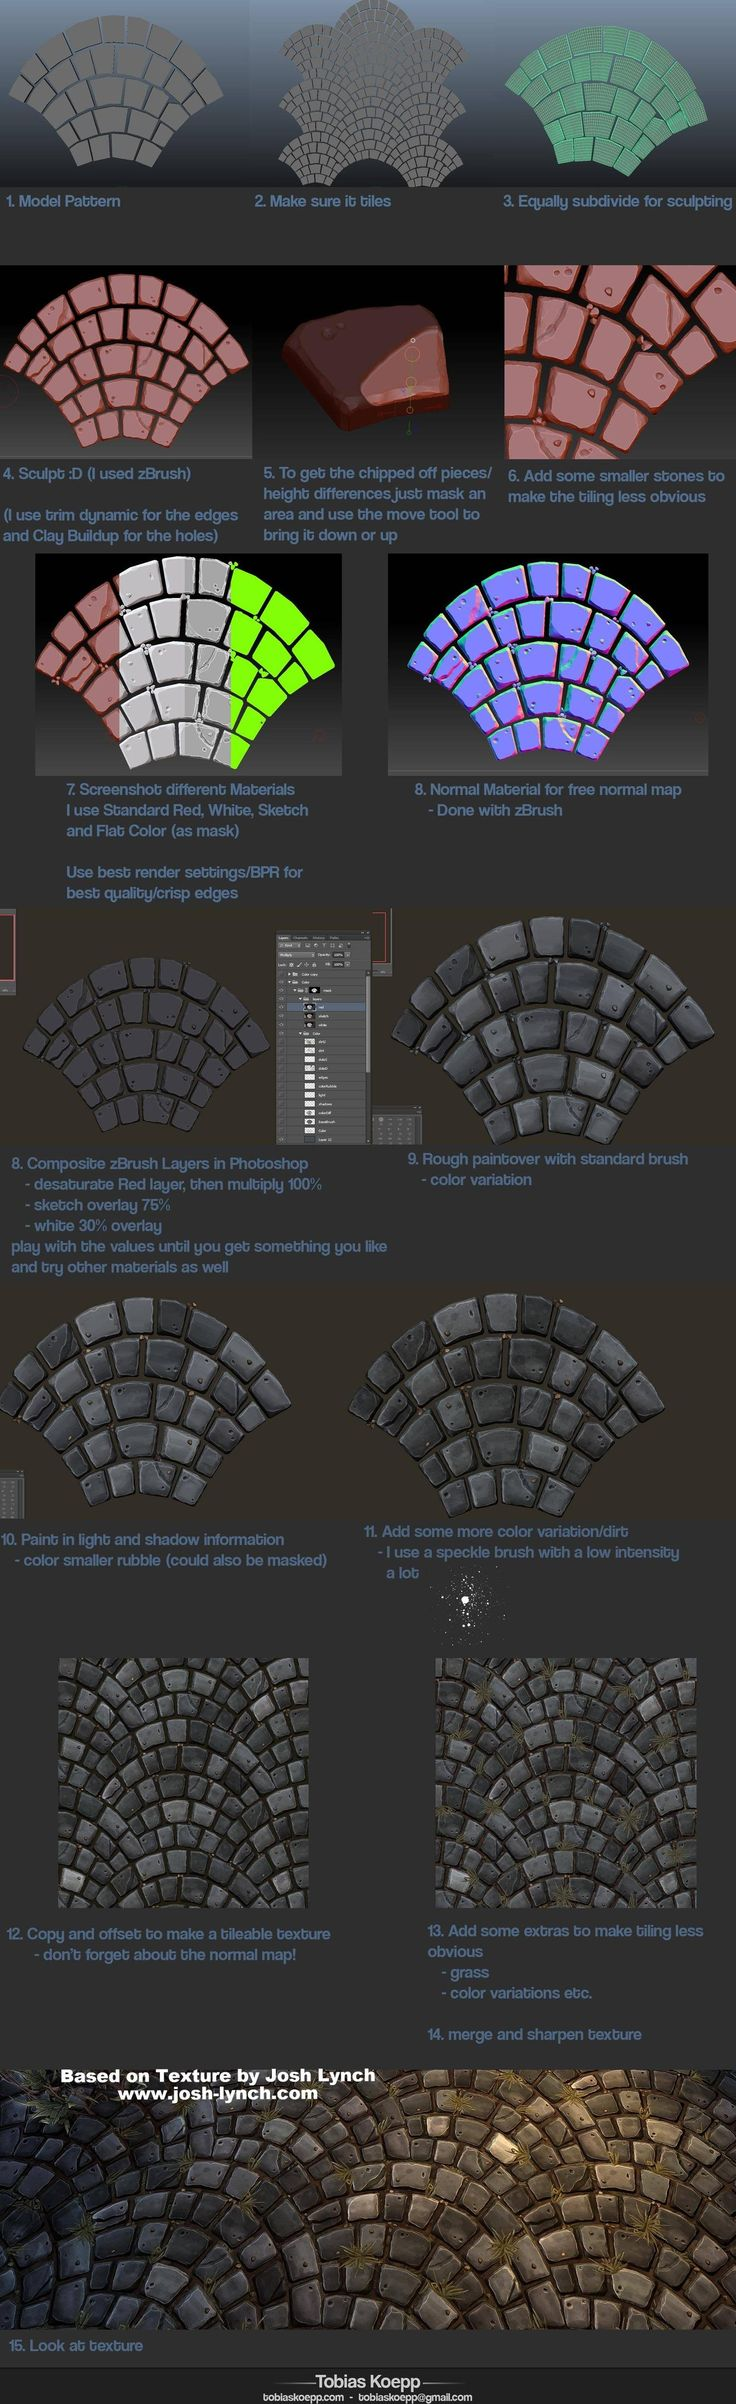 How to cobblestone painting drawing texture resource tool how to tutorial instructions | Create your own roleplaying game material w/ RPG Bard: www.rpgbard.com | Writing inspiration for Dungeons and Dragons DND D&D Pathfinder PFRPG Warhammer 40k Star Wars Shadowrun Call of Cthulhu Lord of the Rings LoTR + d20 fantasy science fiction scifi horror design | Not Trusty Sword art: click artwork for source